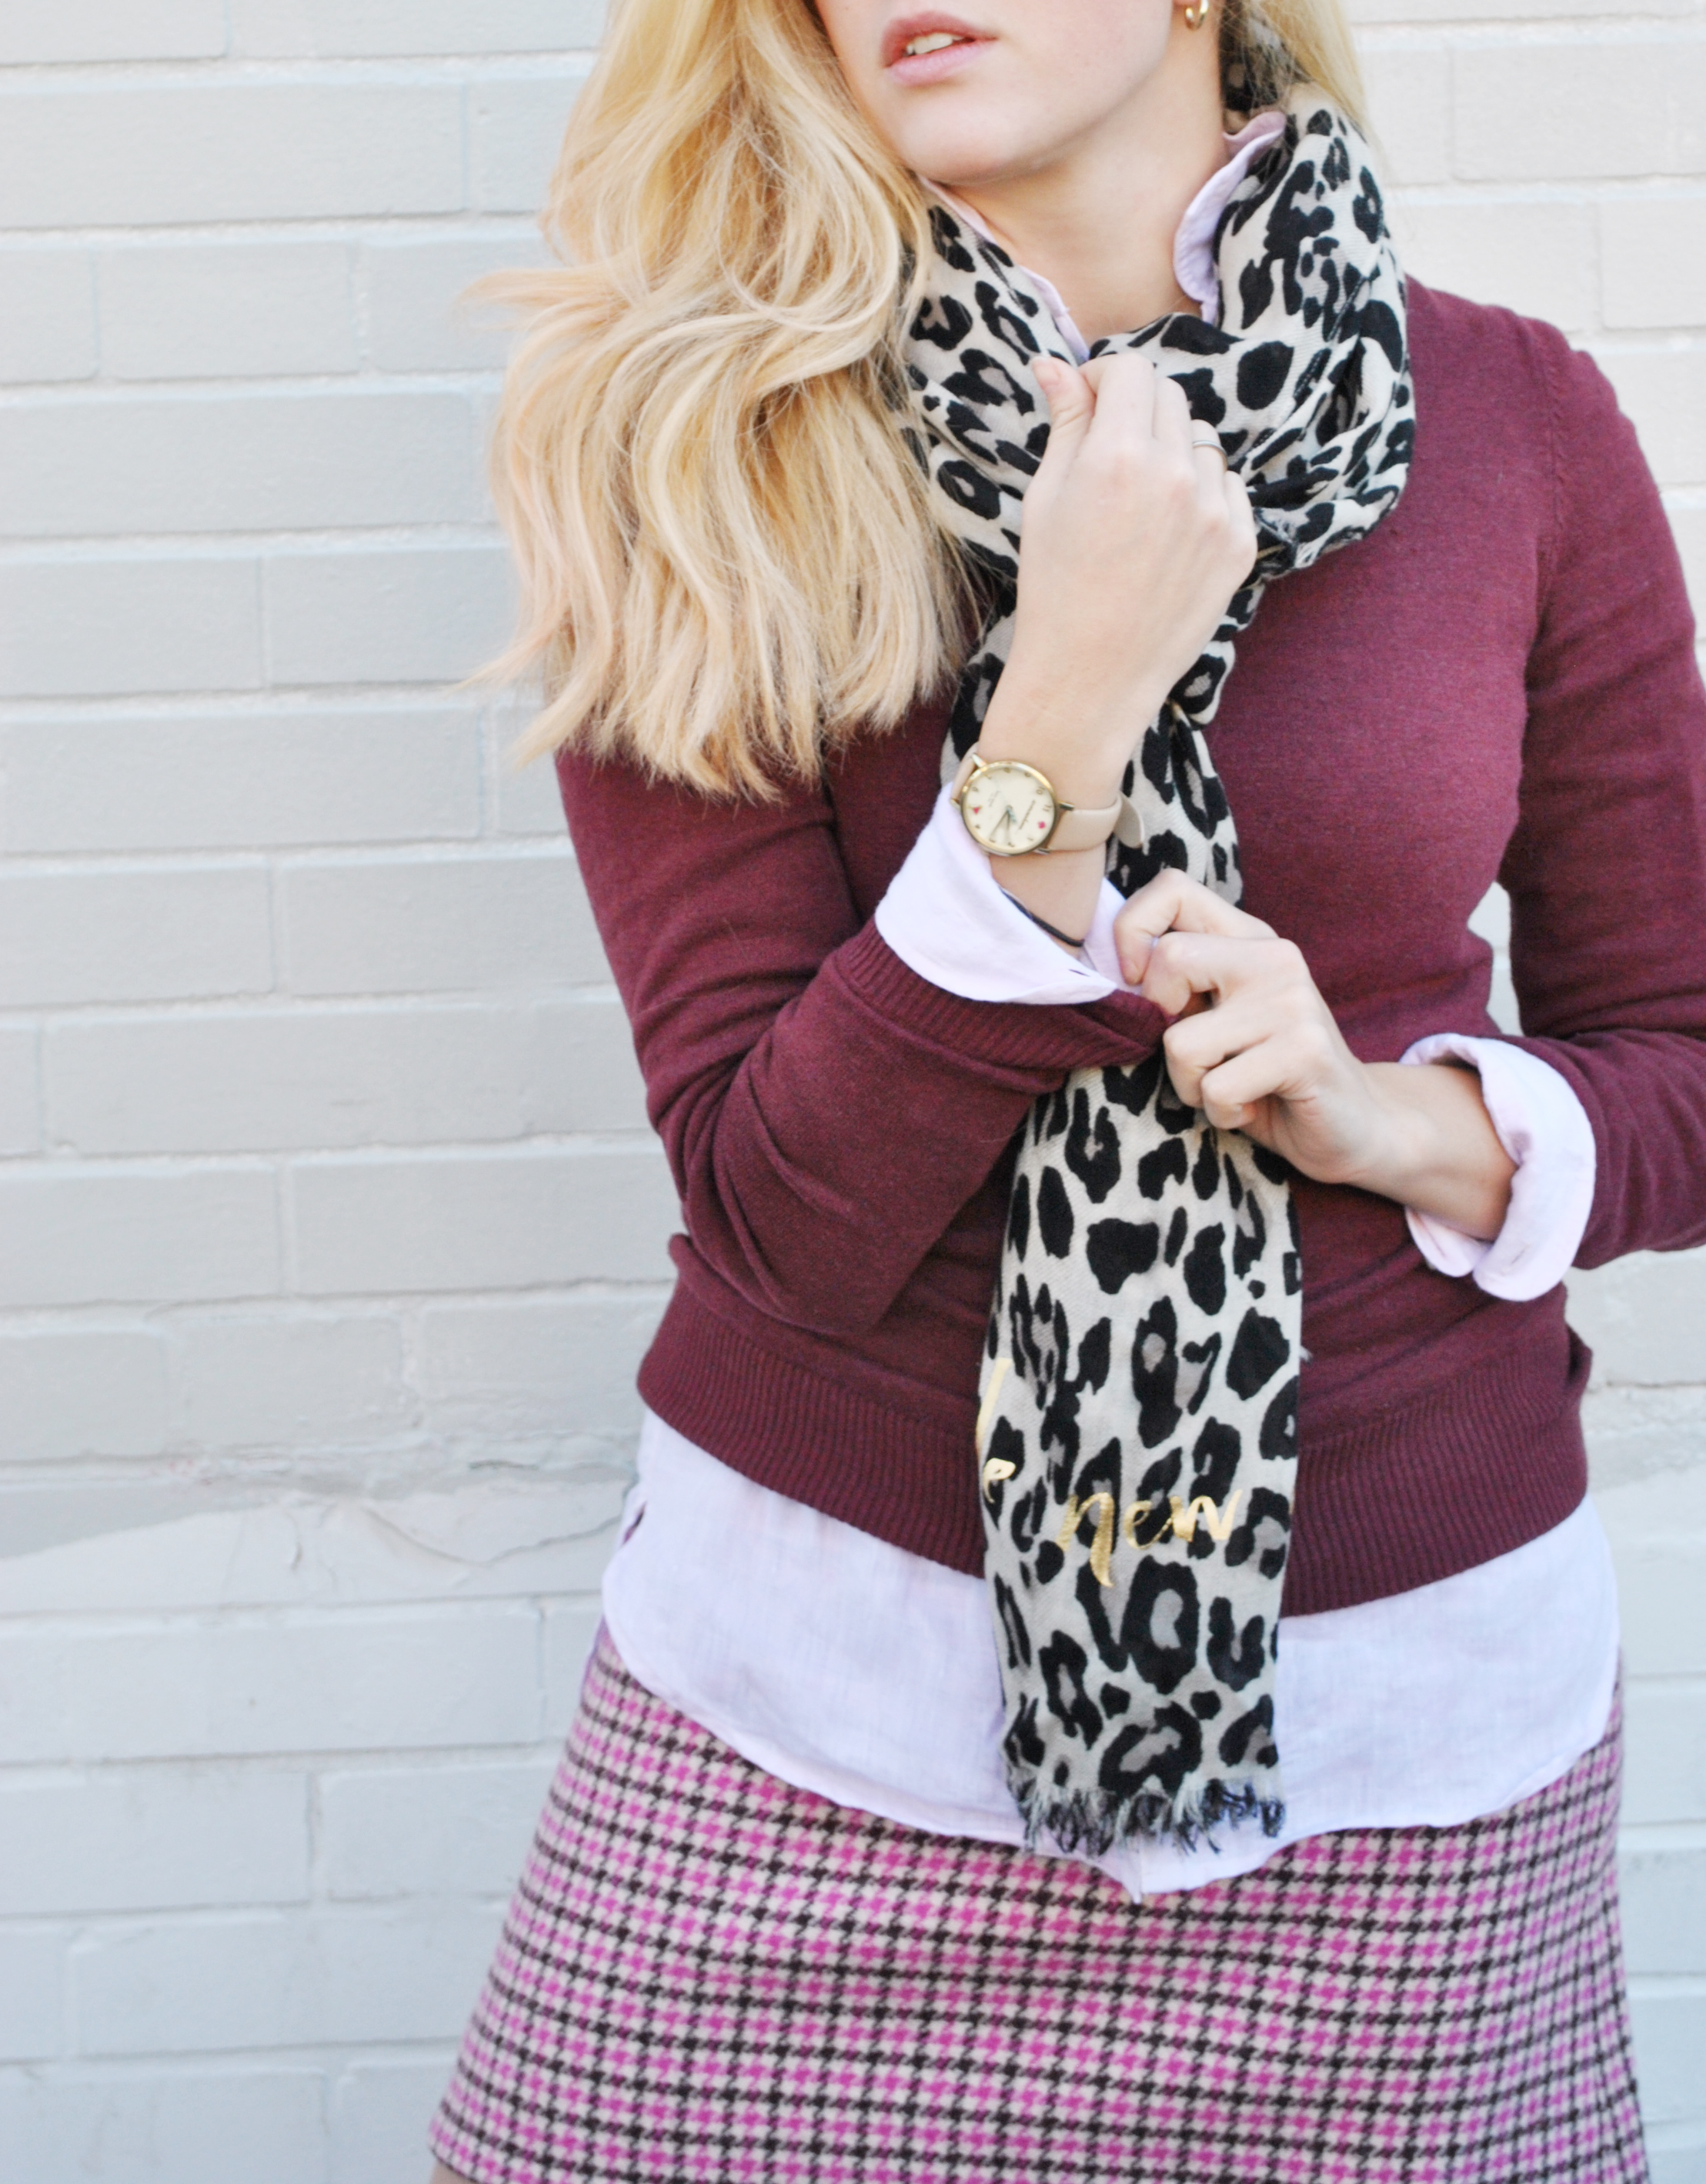 thoughtfulwish | preppy outfit, fall outfit, thanksgiving outfit, houndstooth, pattern mixing, leopard print, fashion blogger, boston fashion, new england fashion, prepster, meredith wish